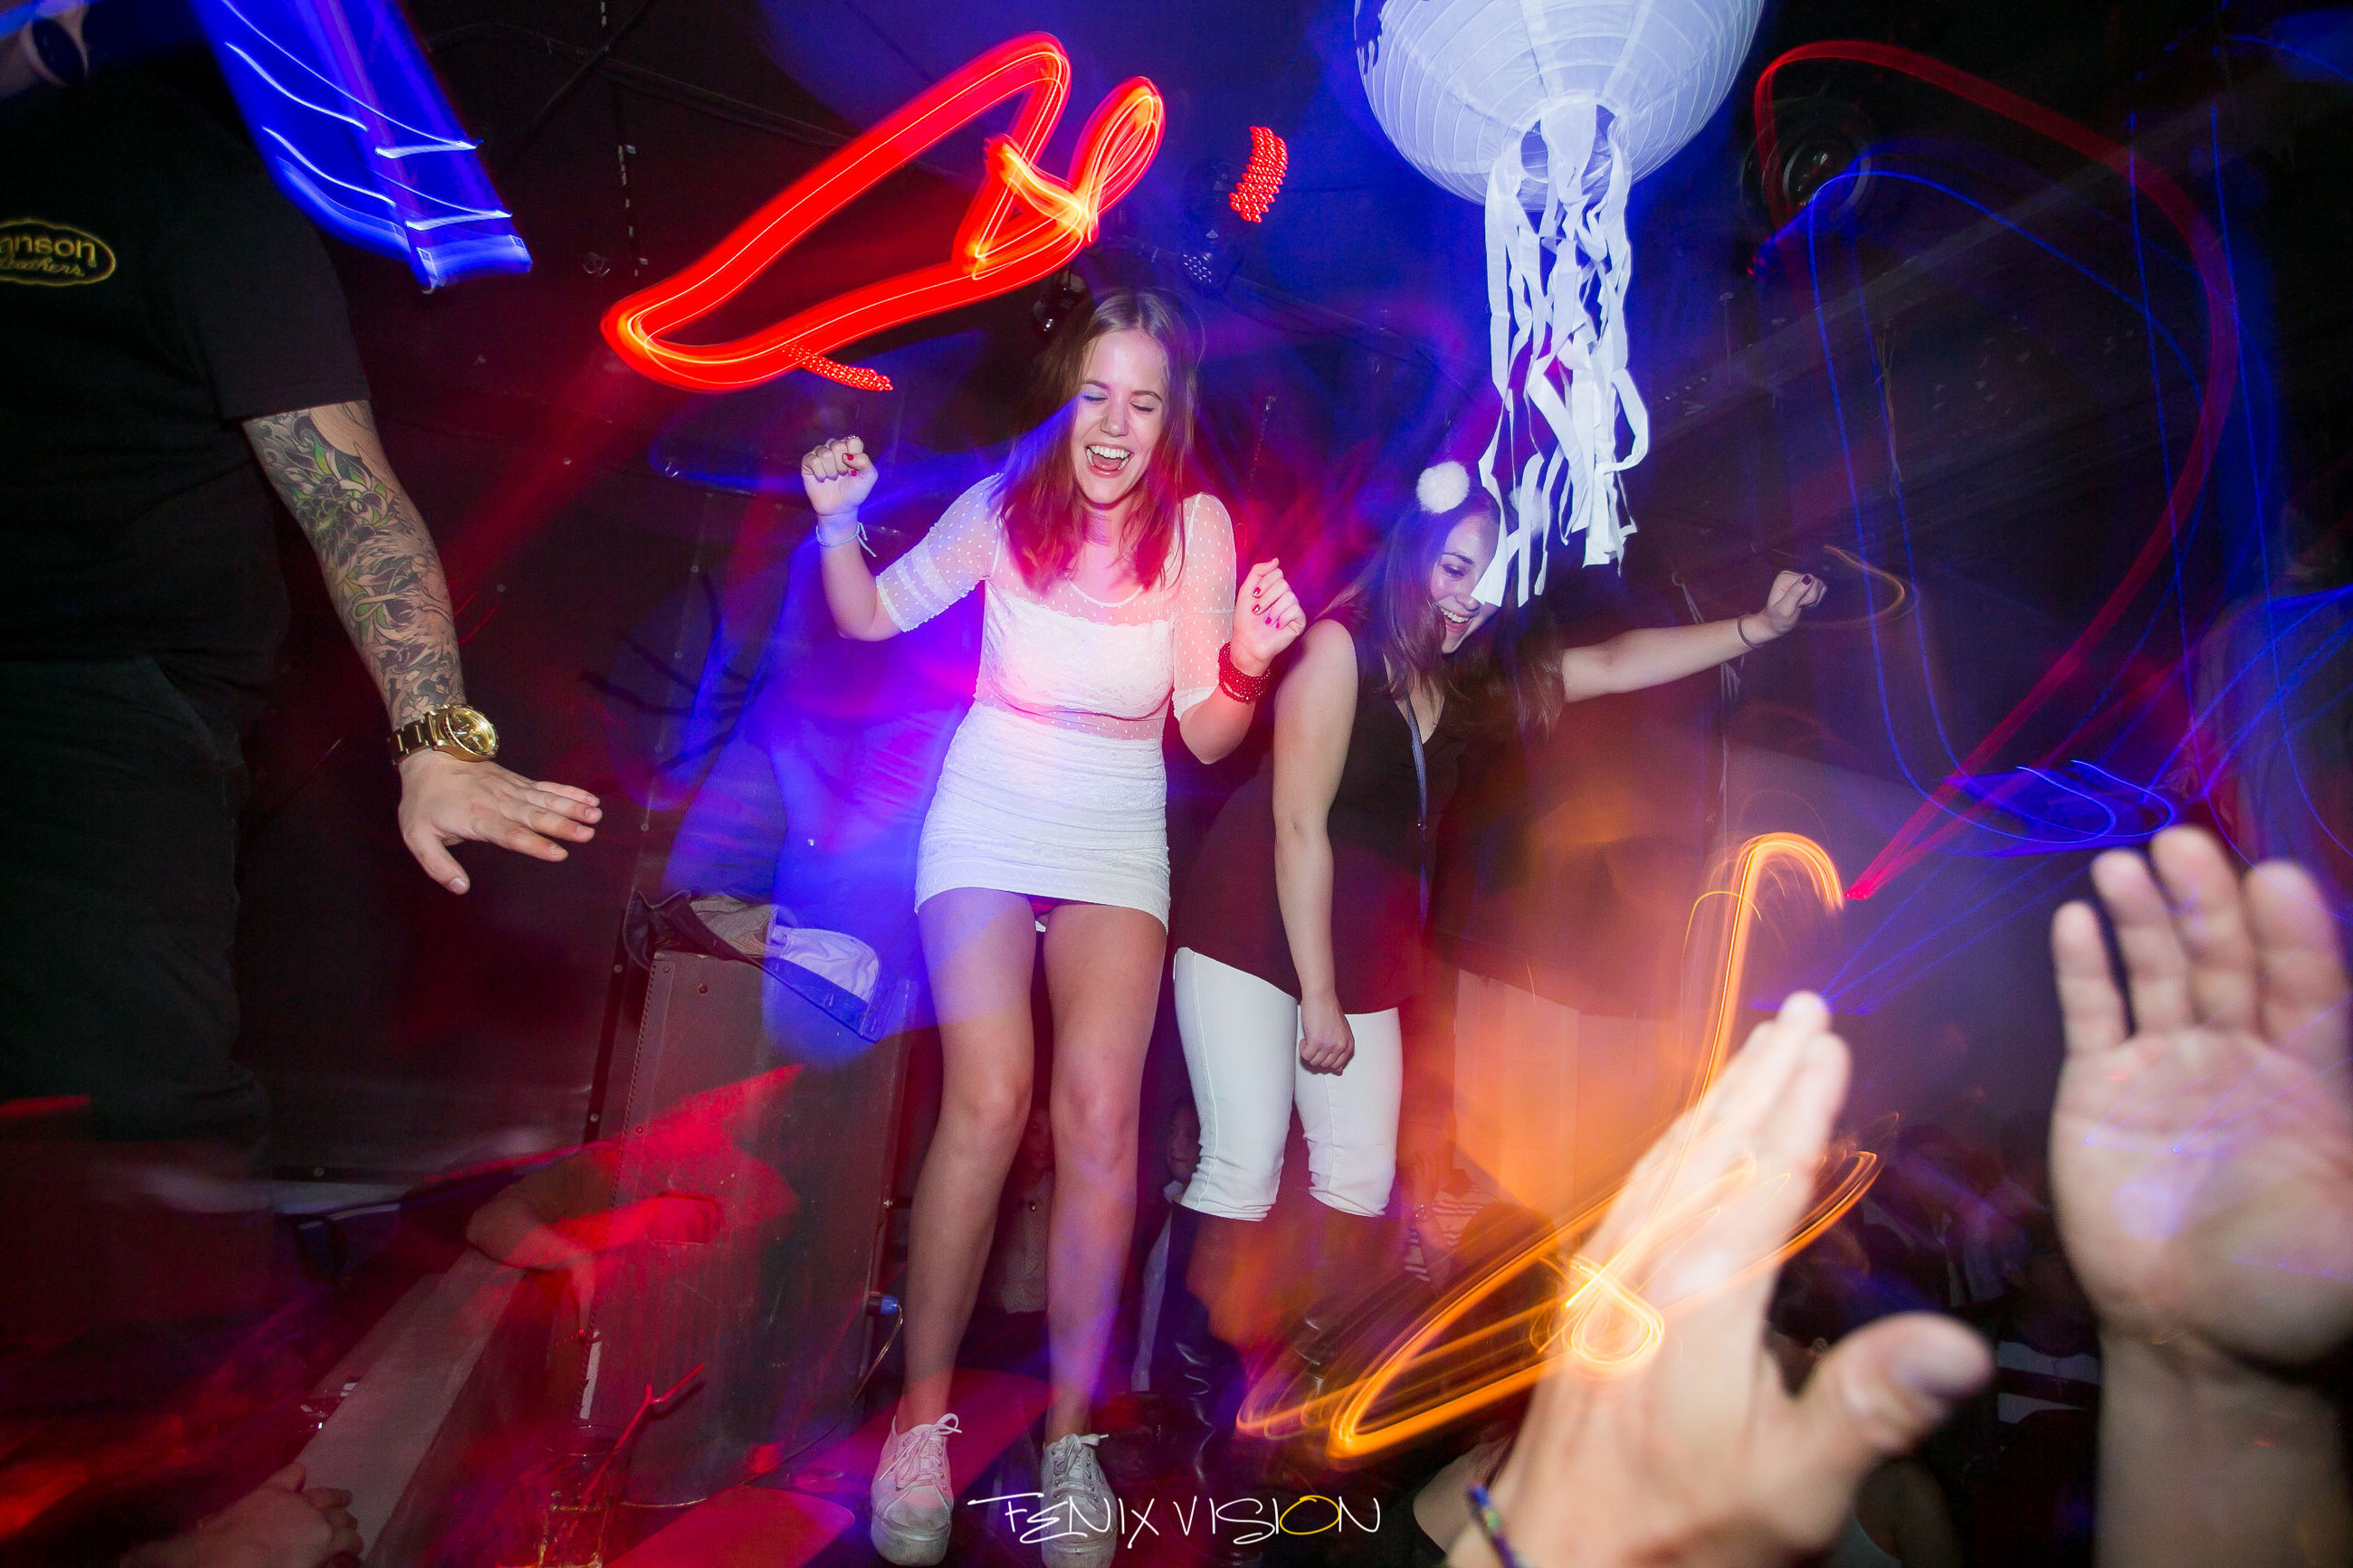 lifestyles, arts culture and entertainment, leisure activity, illuminated, enjoyment, fun, night, men, music, performance, skill, youth culture, nightlife, event, person, indoors, playing, arms raised